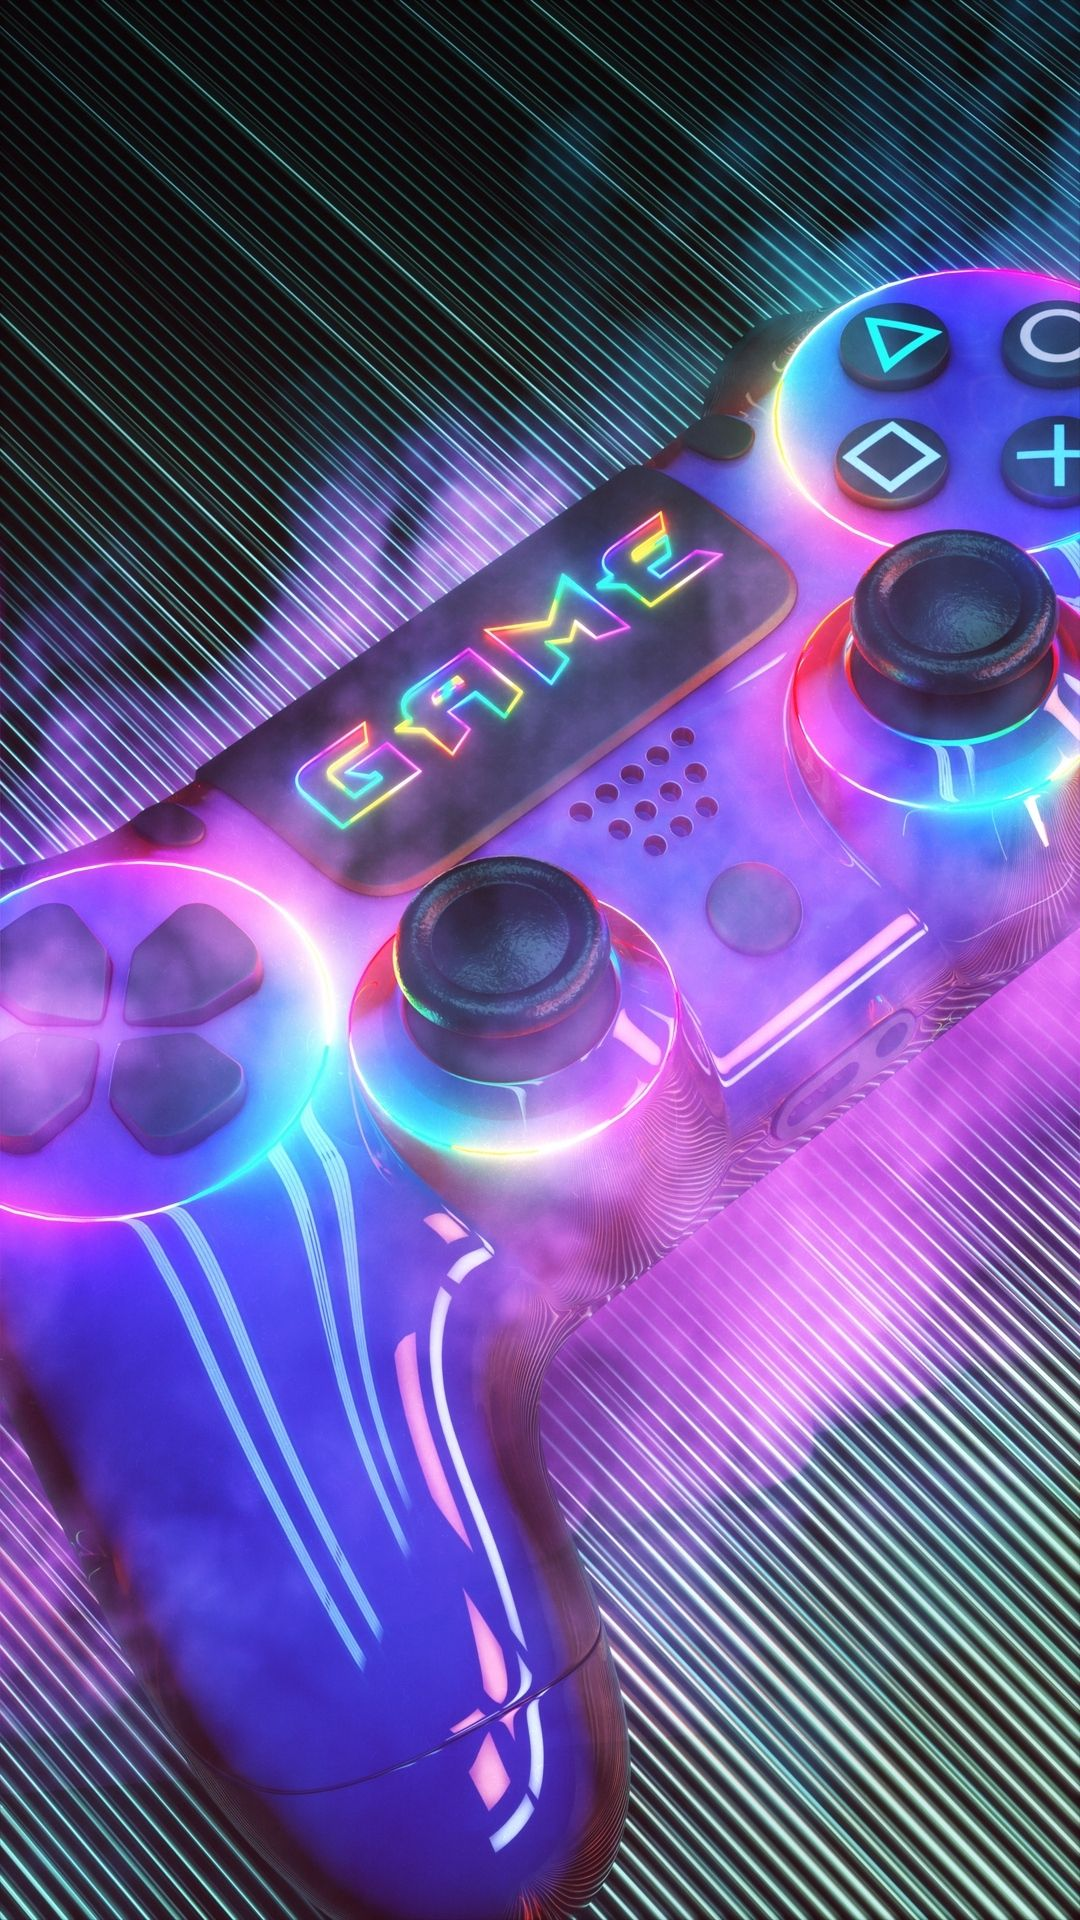 Game Controller Iphone X Wallpaper Latar Belakang Game Bintang Jatuh Karya Seni 3d